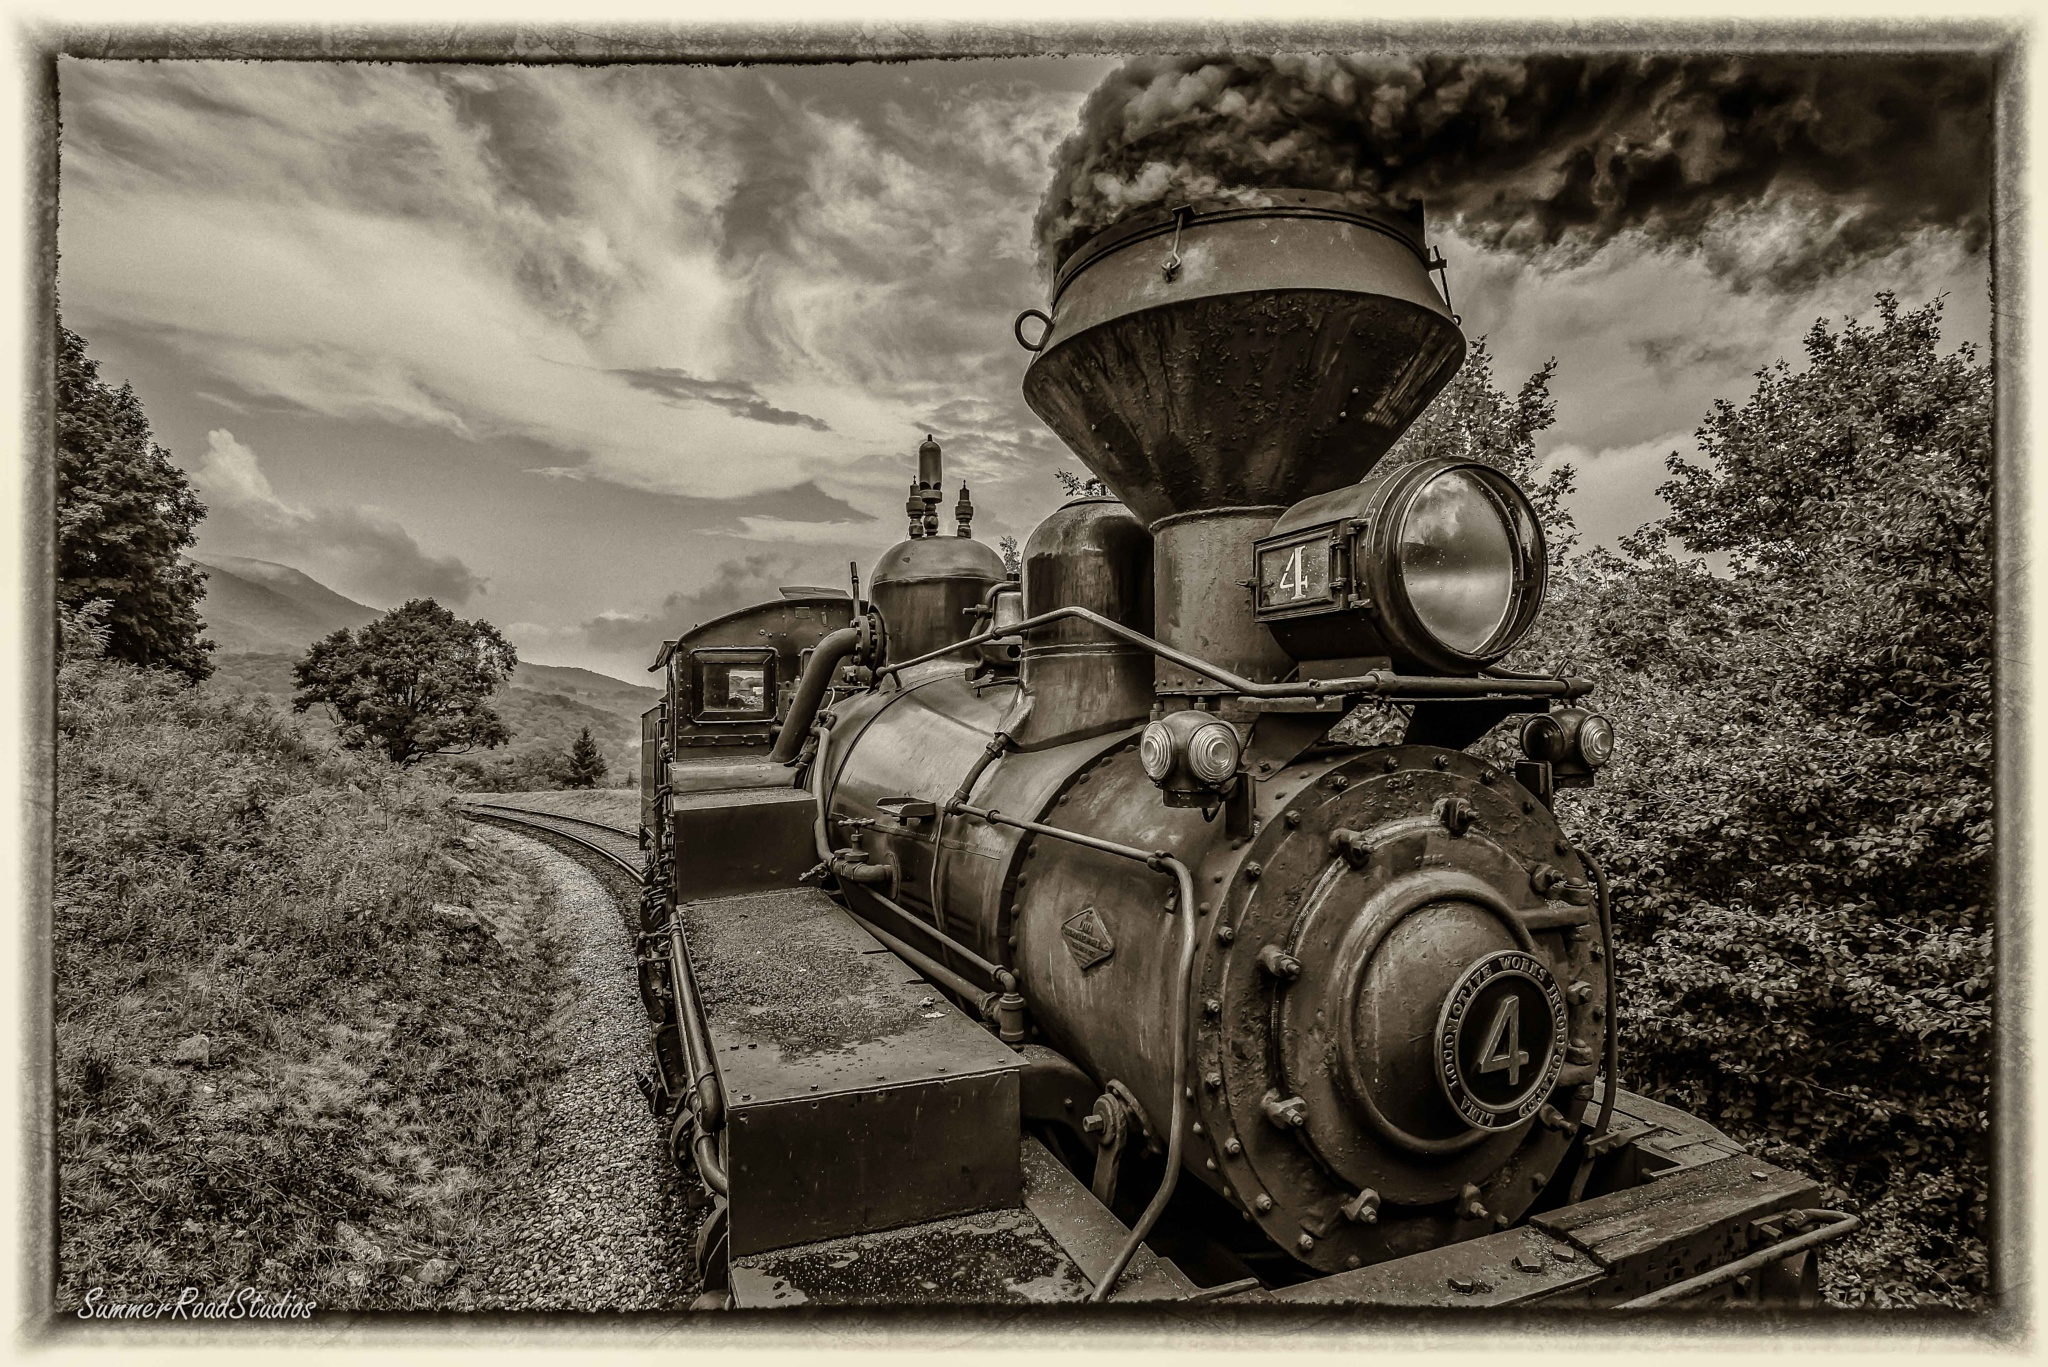 Logging locomotive. by wexfenne24